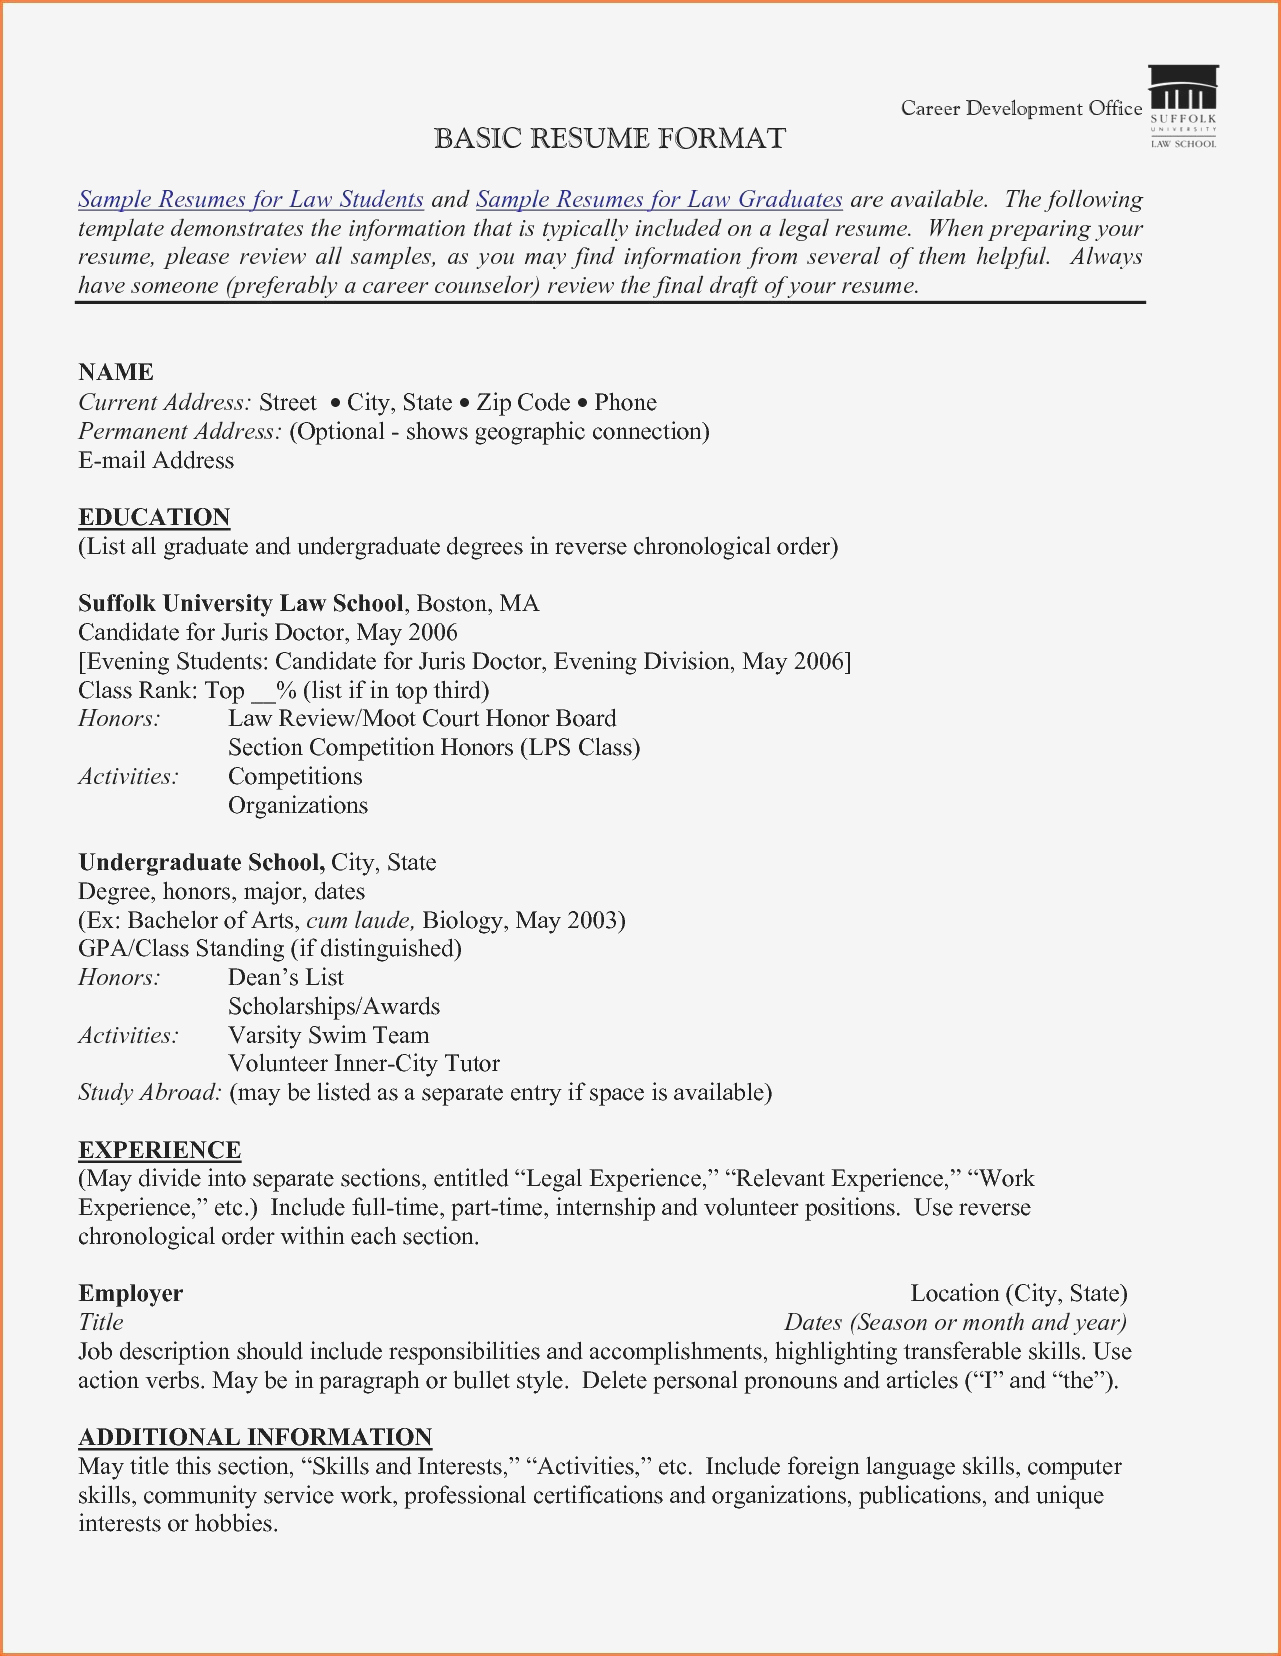 counseling resume template example-Format Portfolio Website Review Inspirationa Lovely Resume Portfolio Template Inspirational Check Template 0d 4-g